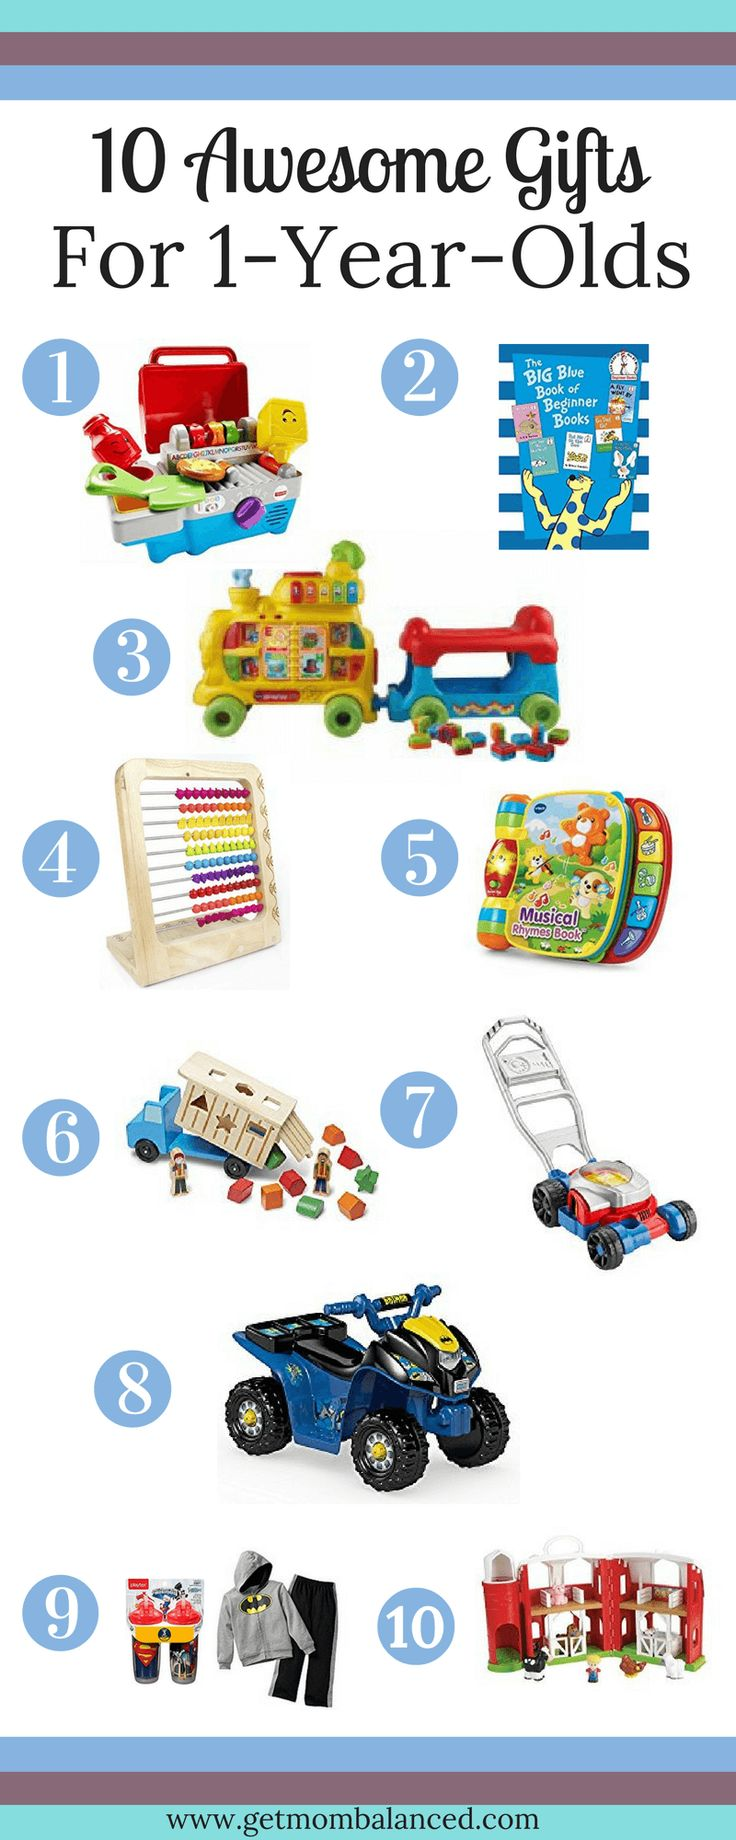 10 Awesome Gifts For 1-Year-Olds-3912